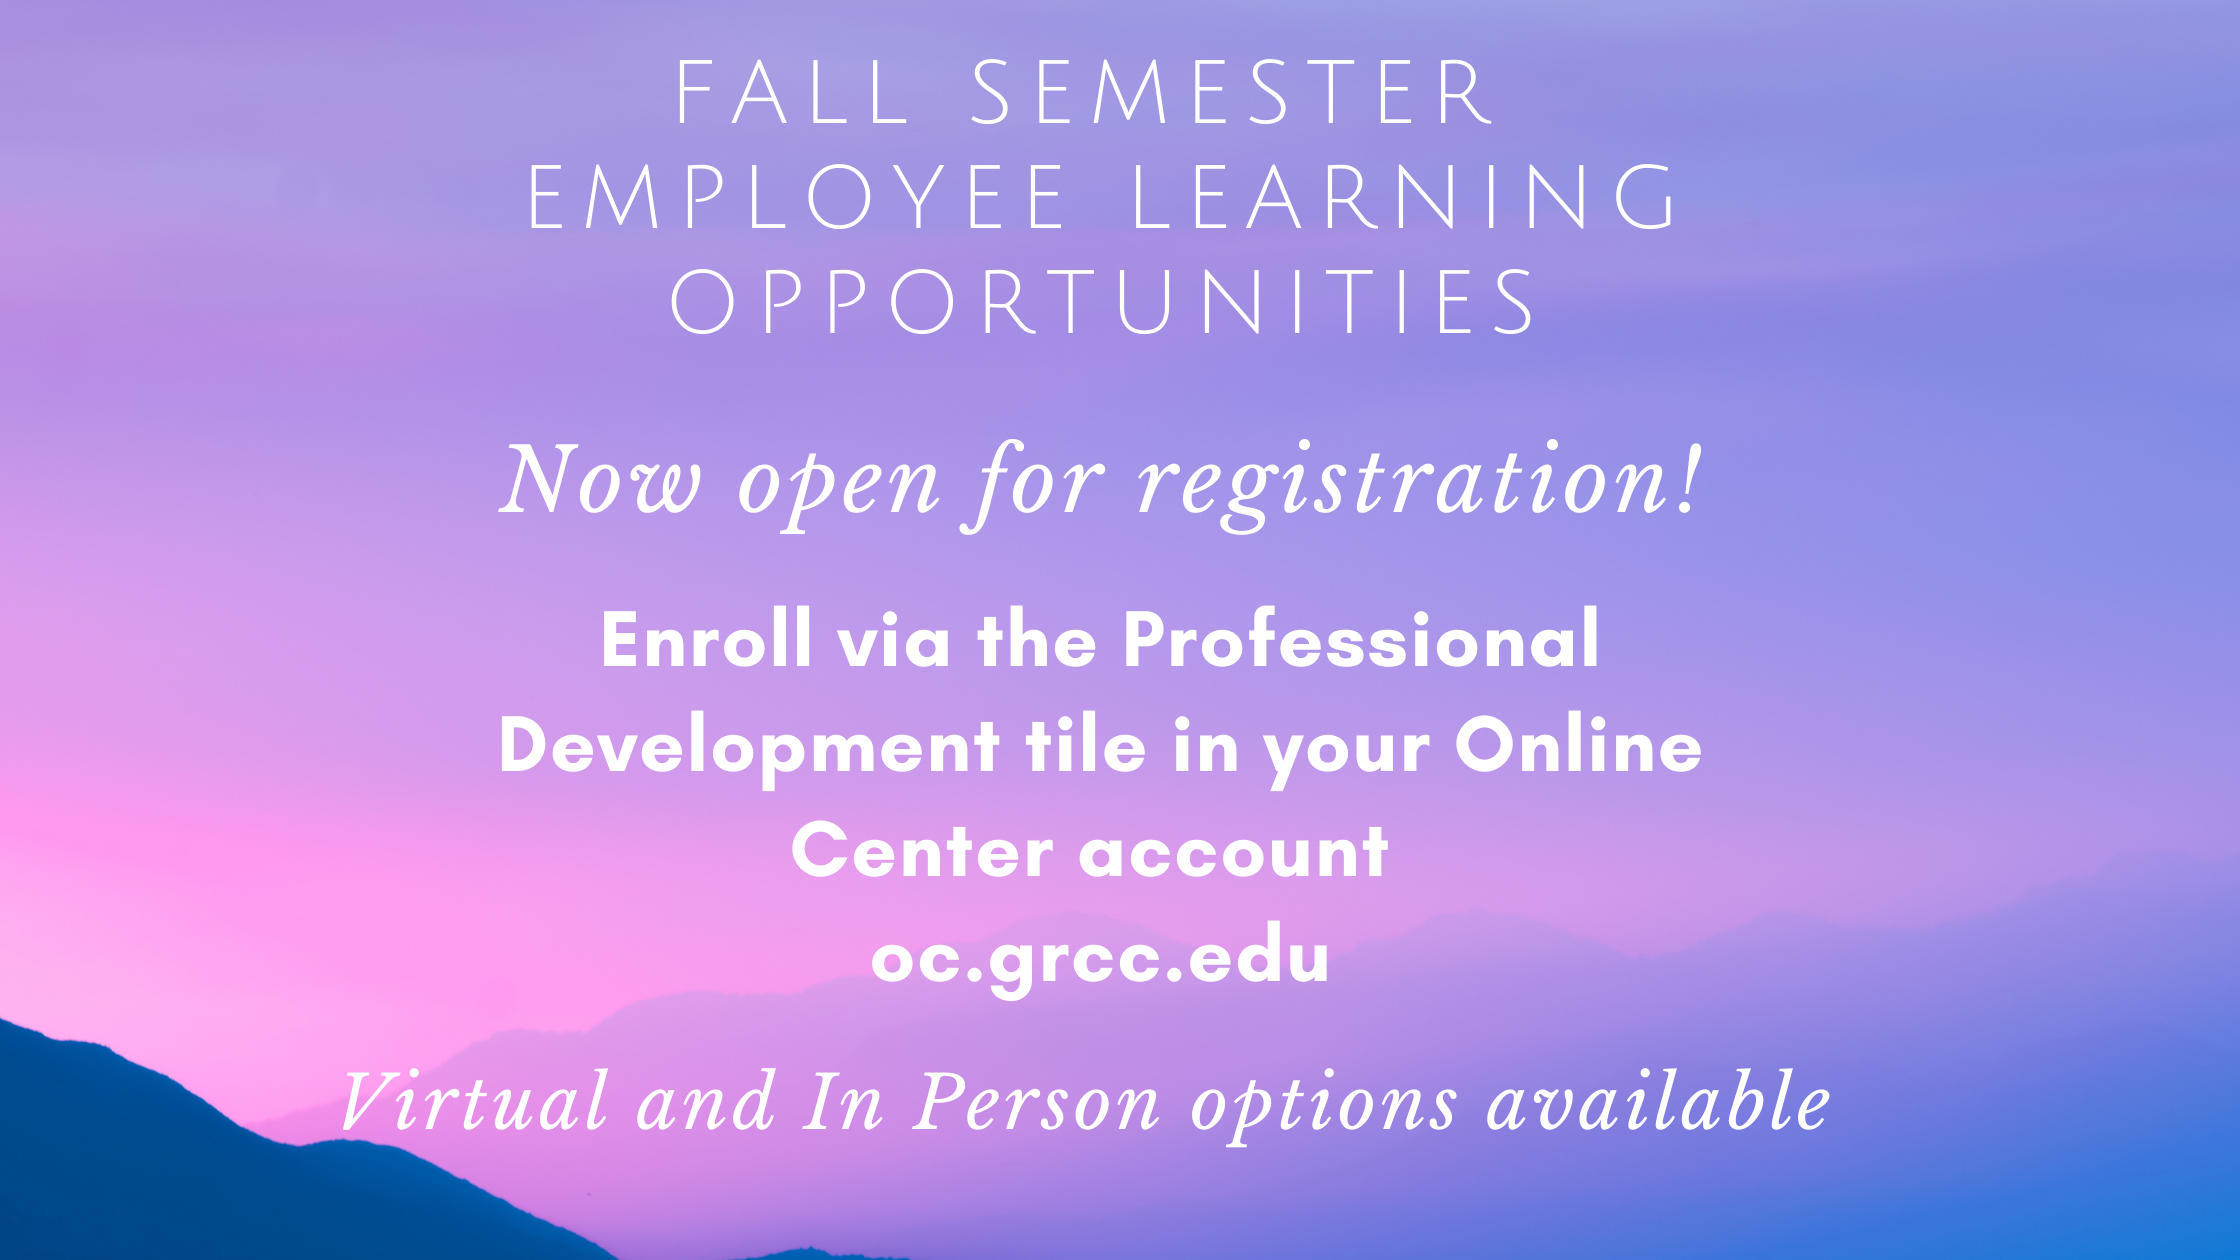 Fall Semester employee learning opportunities. Now open for registration! Enroll via the Professional Development tile in your Online Center account oc.grcc.edu Virtual and In Person options available.